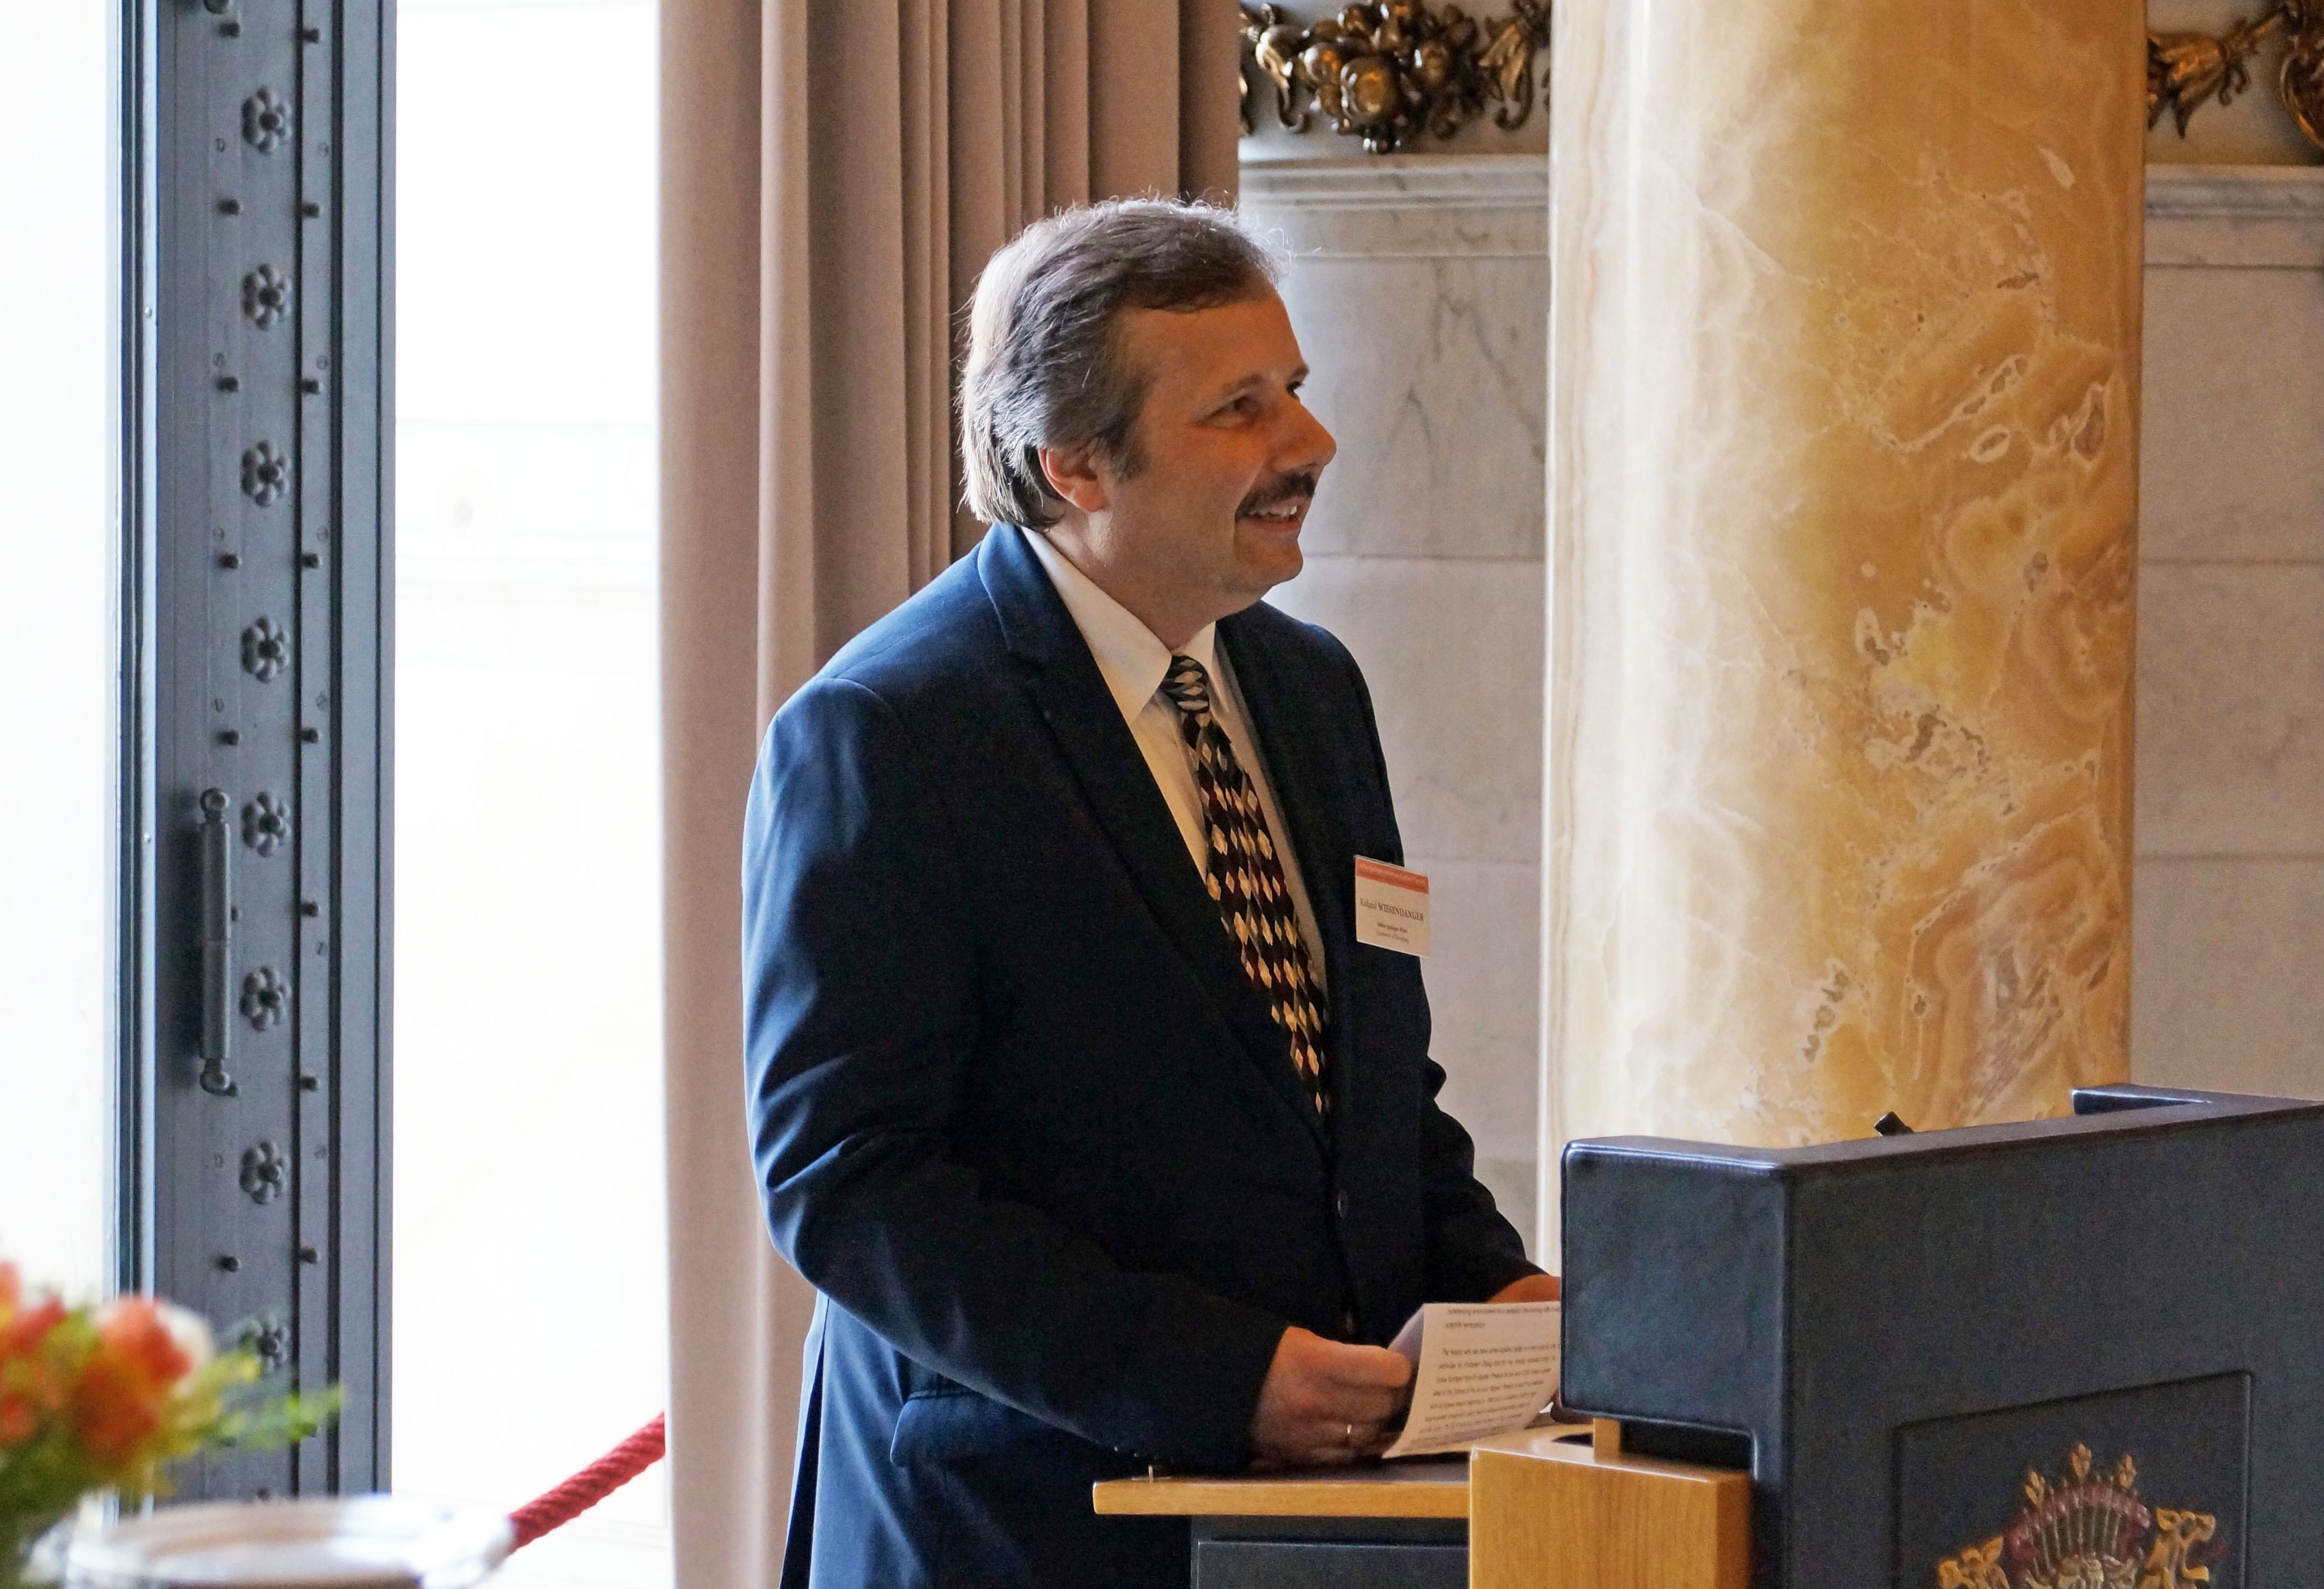 Roland Wiesendanger during the awarding of the Julius Springer Prize 2016